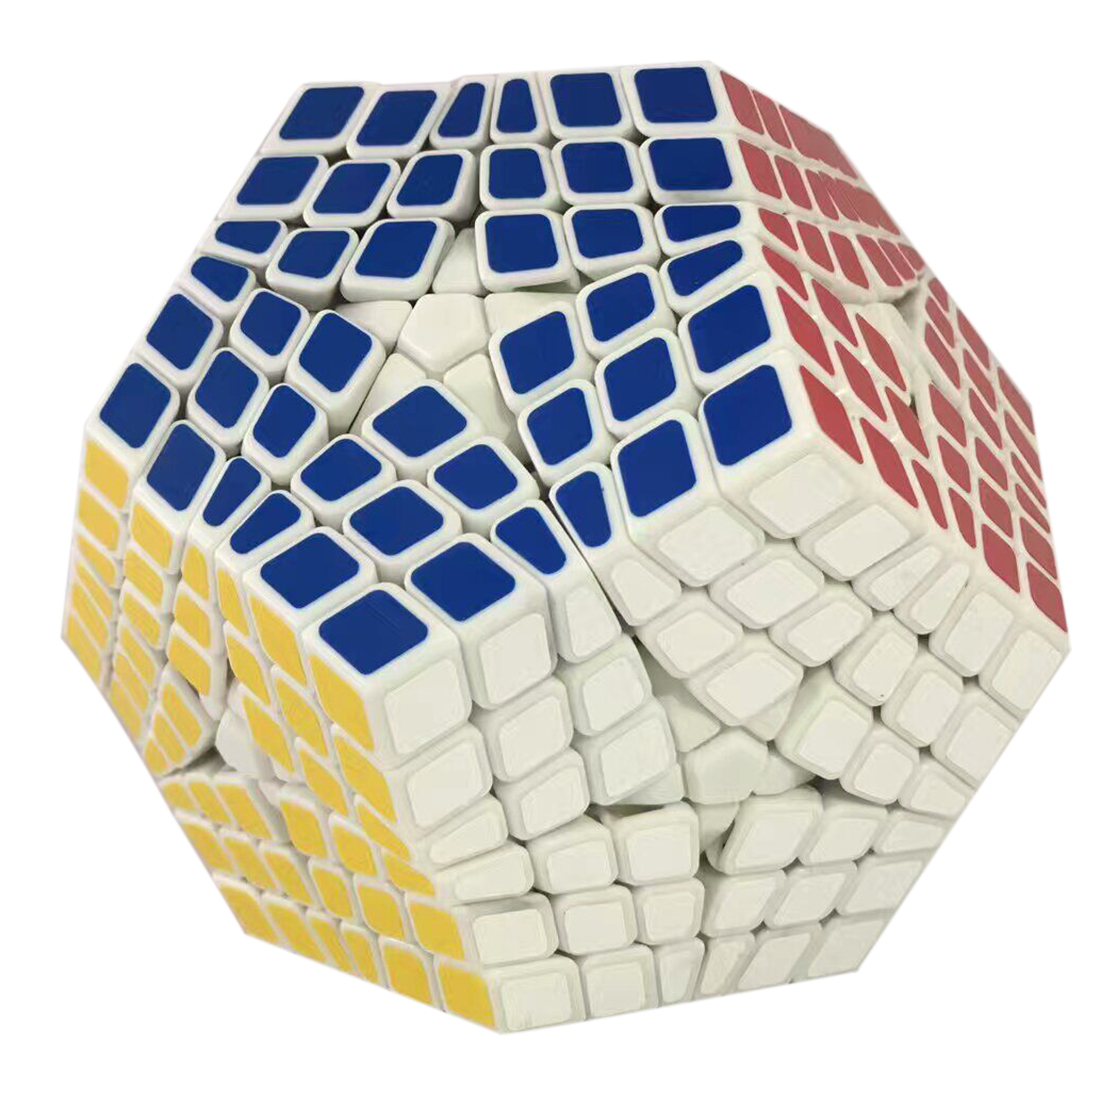 6x6x6 Megaminx Brain Teaser Magic Cube Speed Cube Twisty Puzzle Toy moyu moyan the devils eye ii cube puzzle magic cube brain teaser educational toy